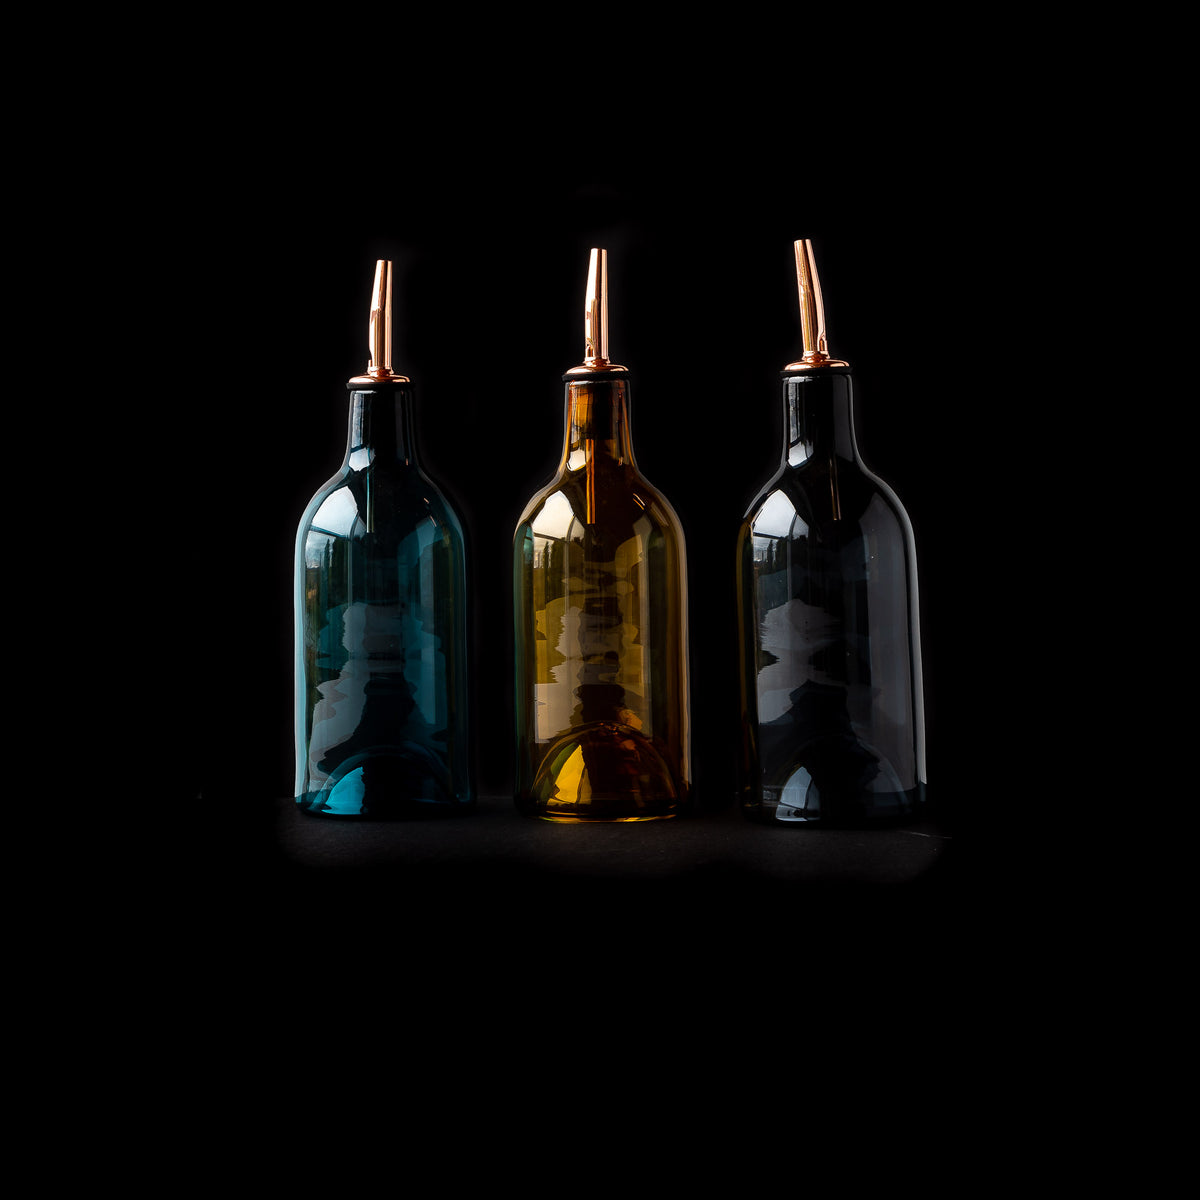 Three Hand-blown Glass Oil / Vinegar Bottles on Black Background - Sold by Chic & Basta